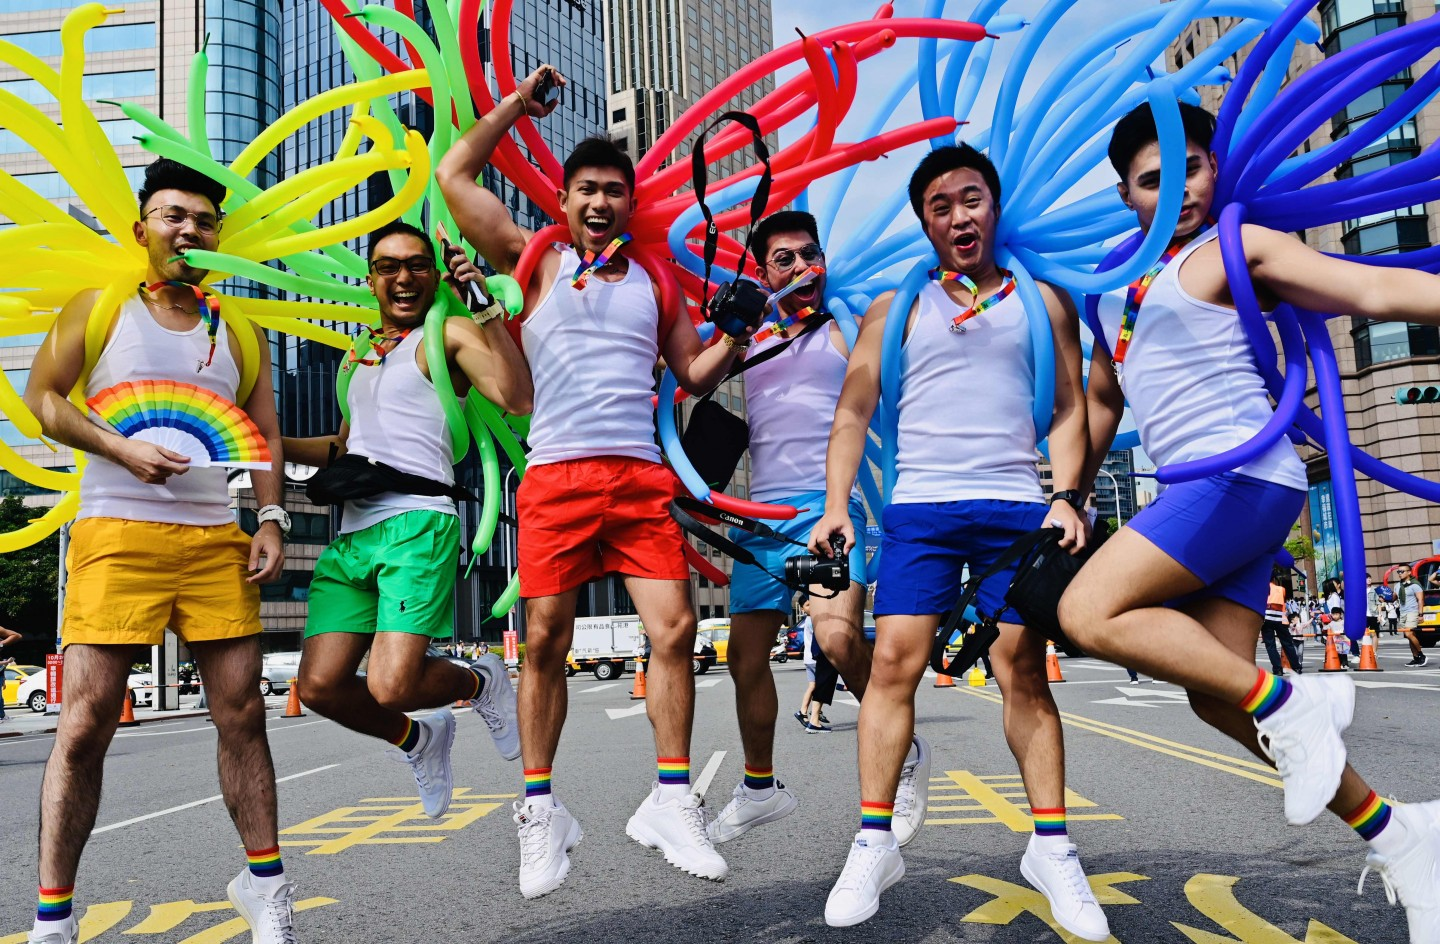 Participants jump in a pose while taking part in the annual gay pride parade in Taipei on October 26, 2019. - Thousands including members of the LGBT community on October 26 took part in the first gay pride parade held after Taiwan earlier this year legalised same-sex marriages, the culmination of a three-decade fight for equality. (Sam Yeh/AFP)